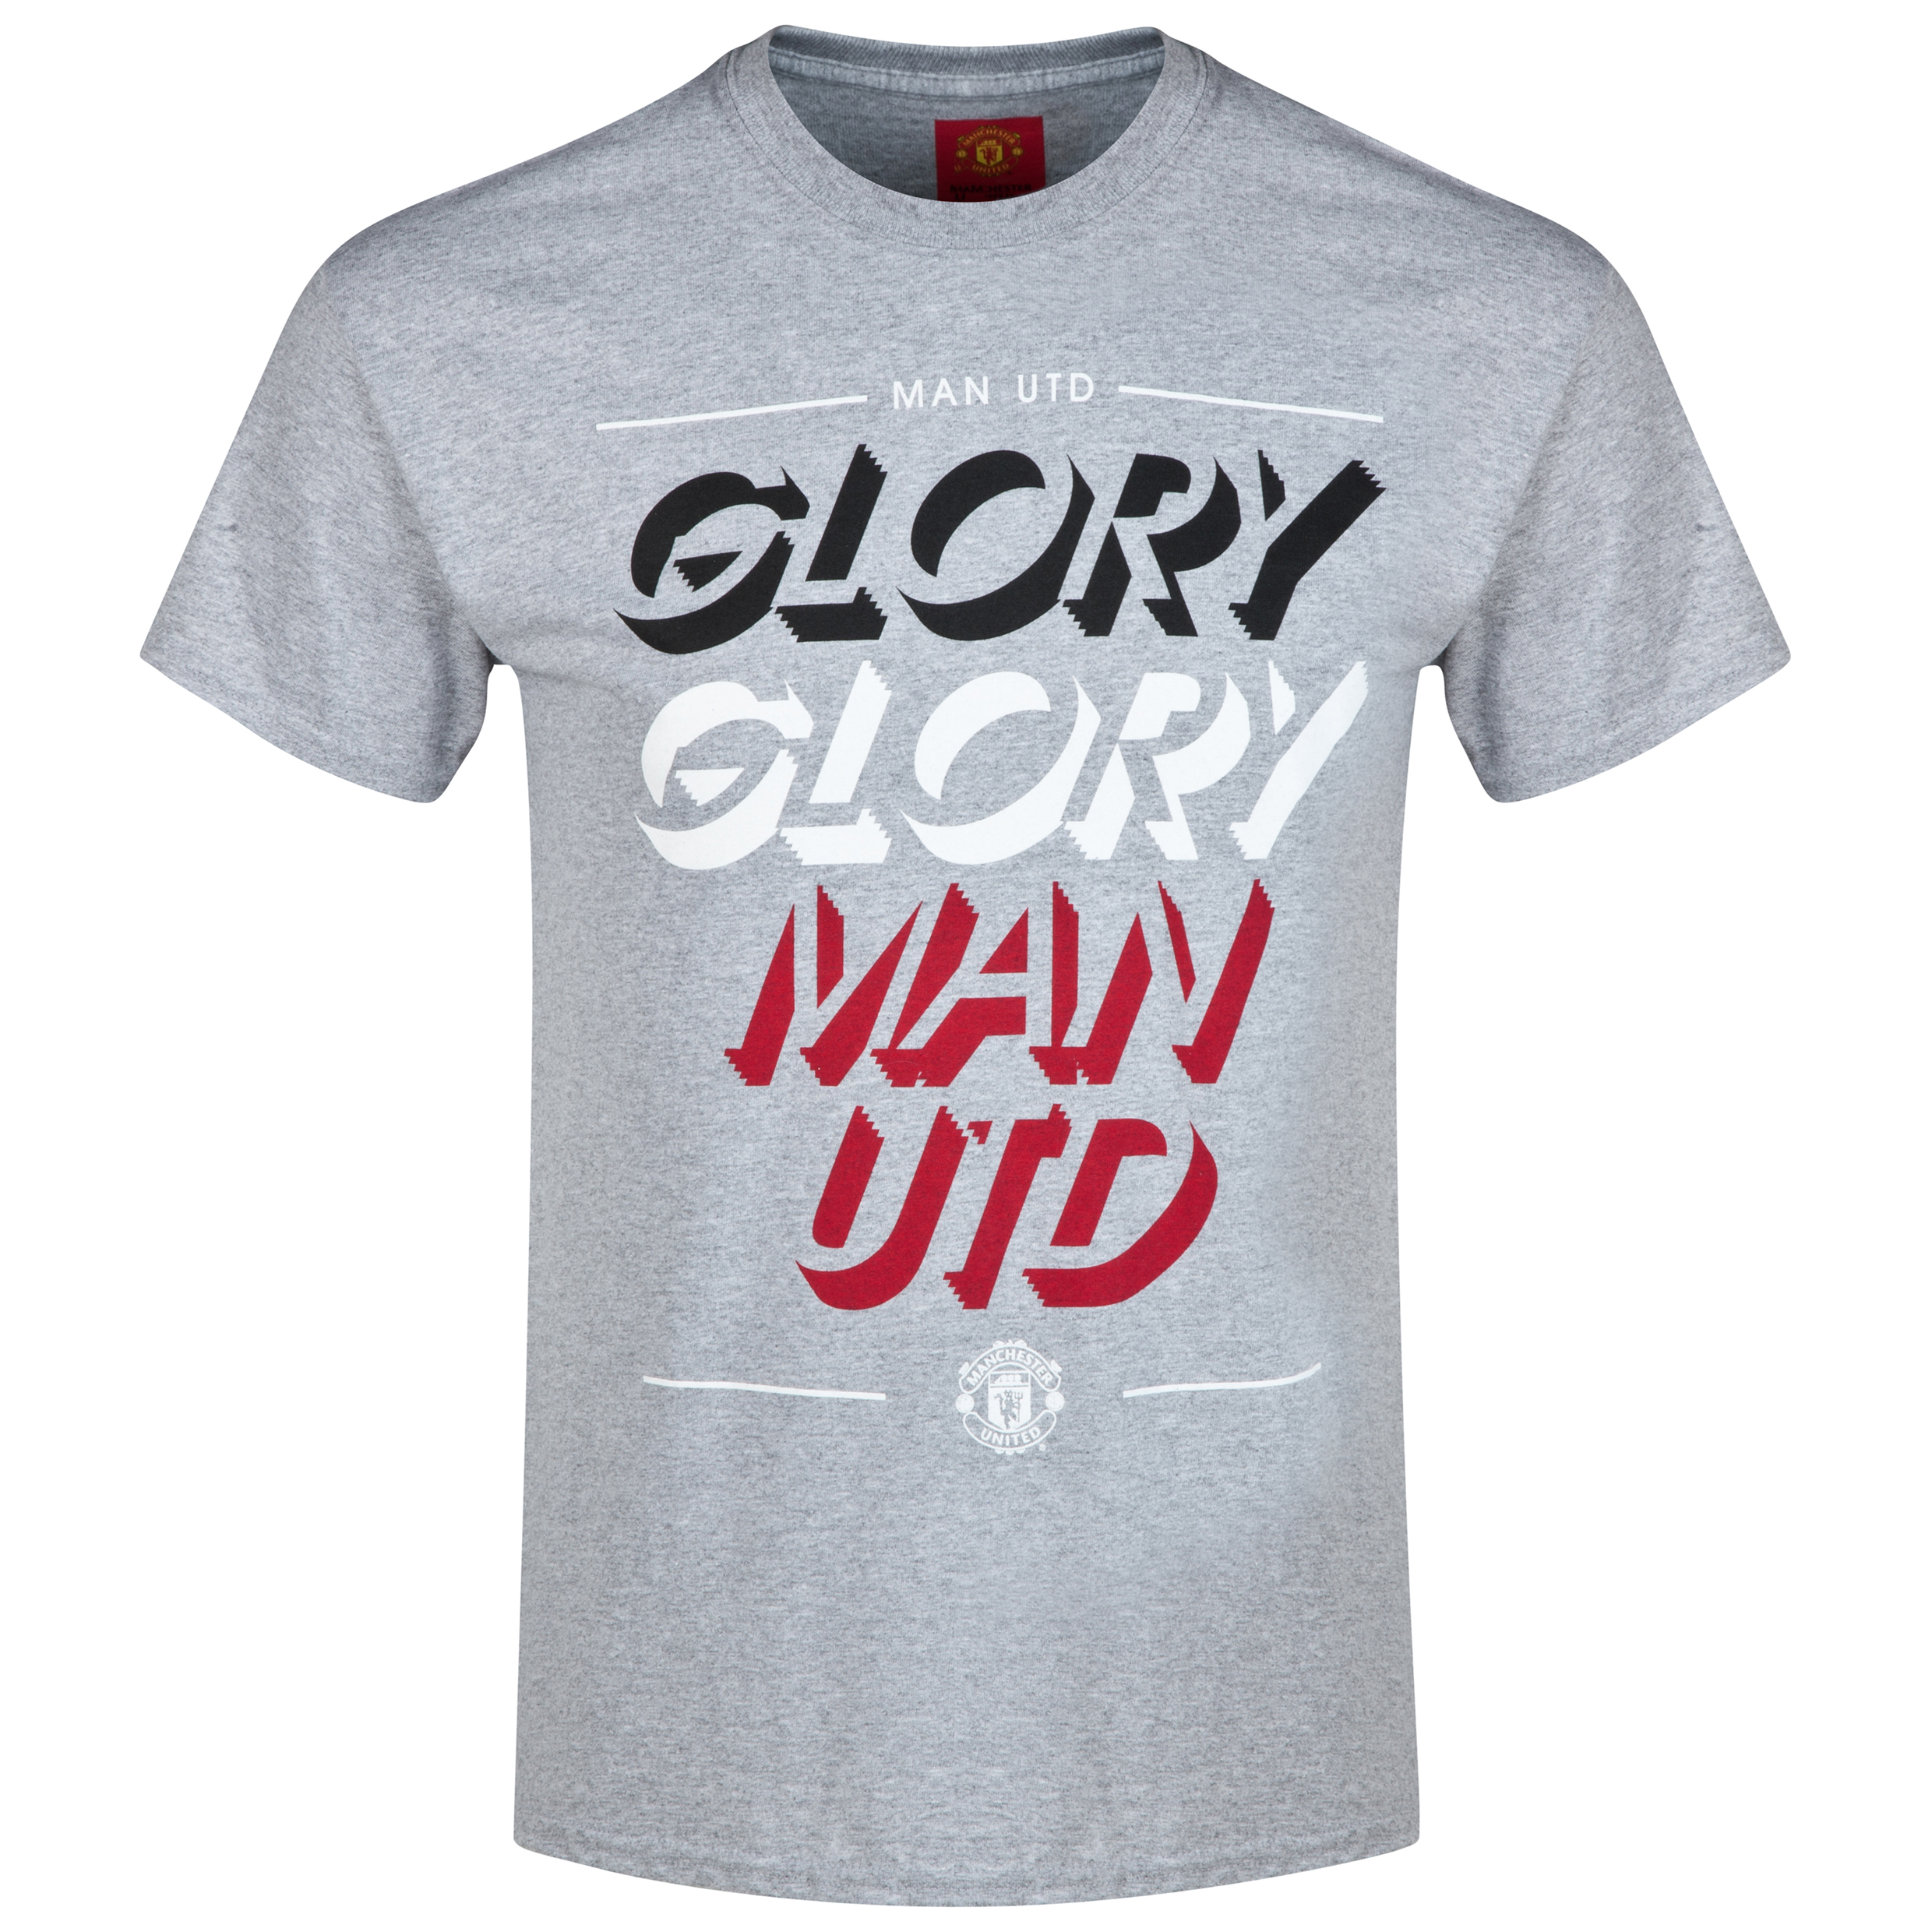 Manchester United Glory Glory Man Utd T-Shirt - Sports Grey - Mens